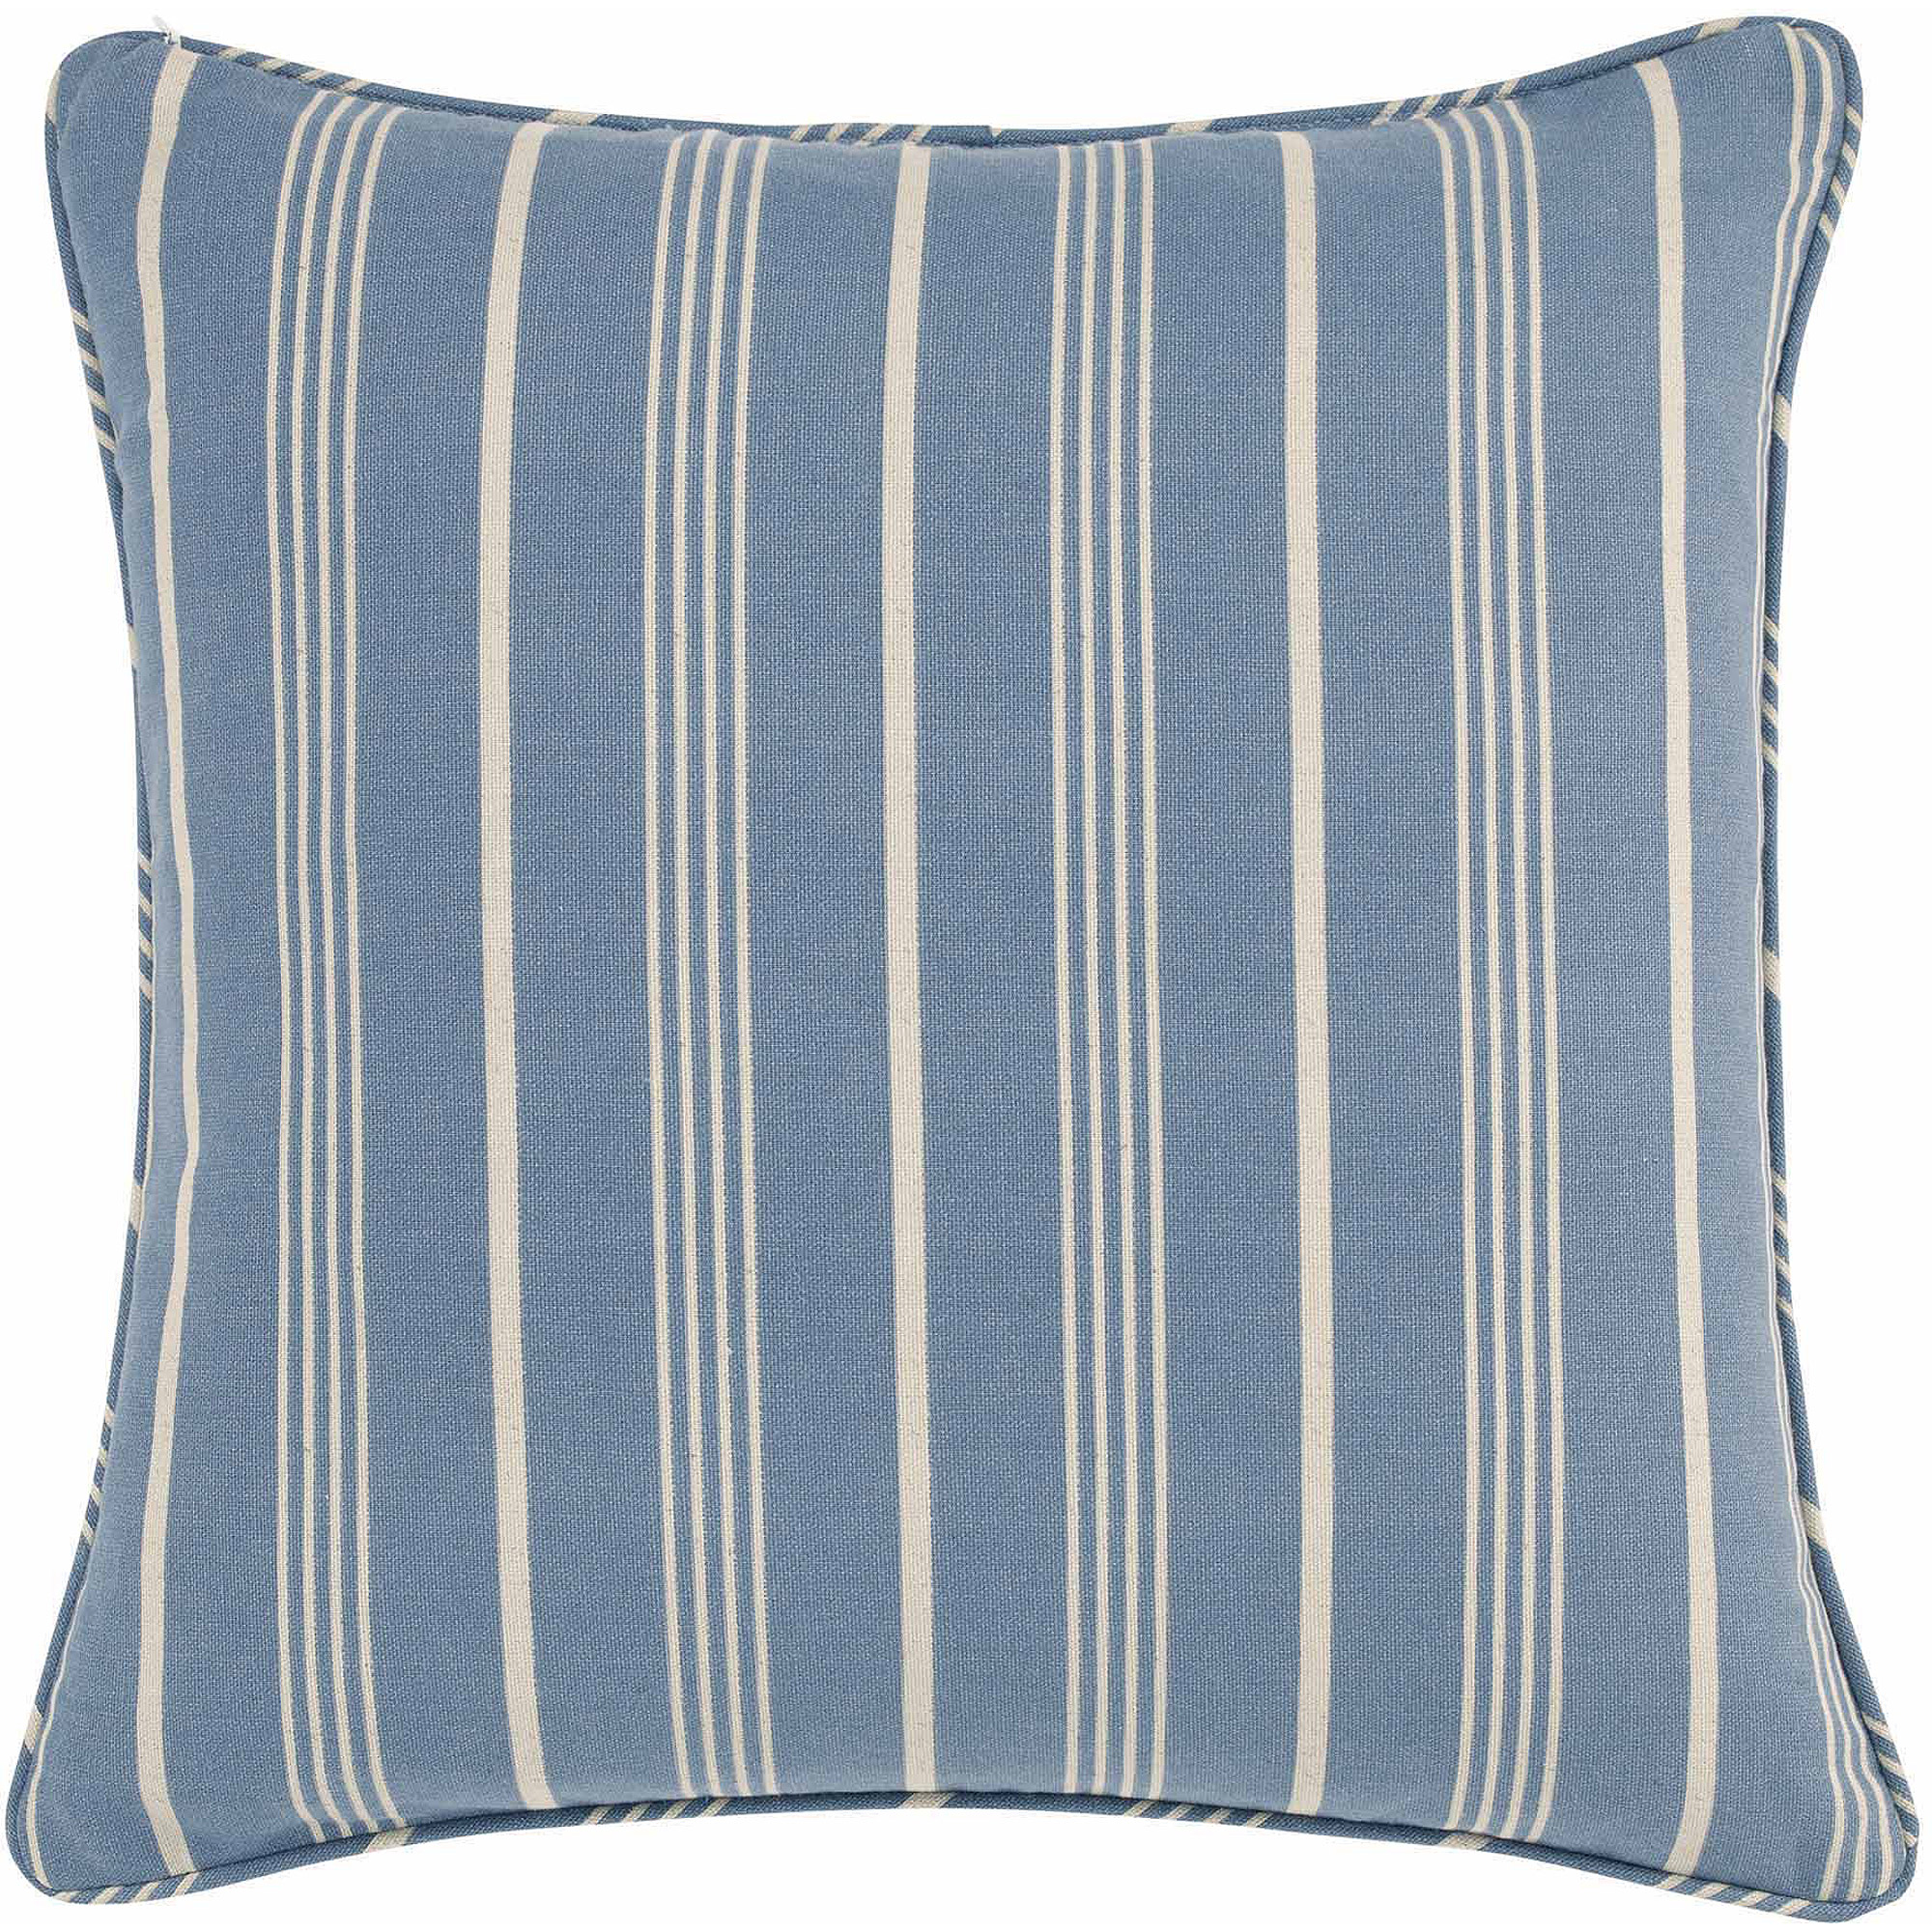 Sure Fit Grain Sack Stripe Pillow Cover